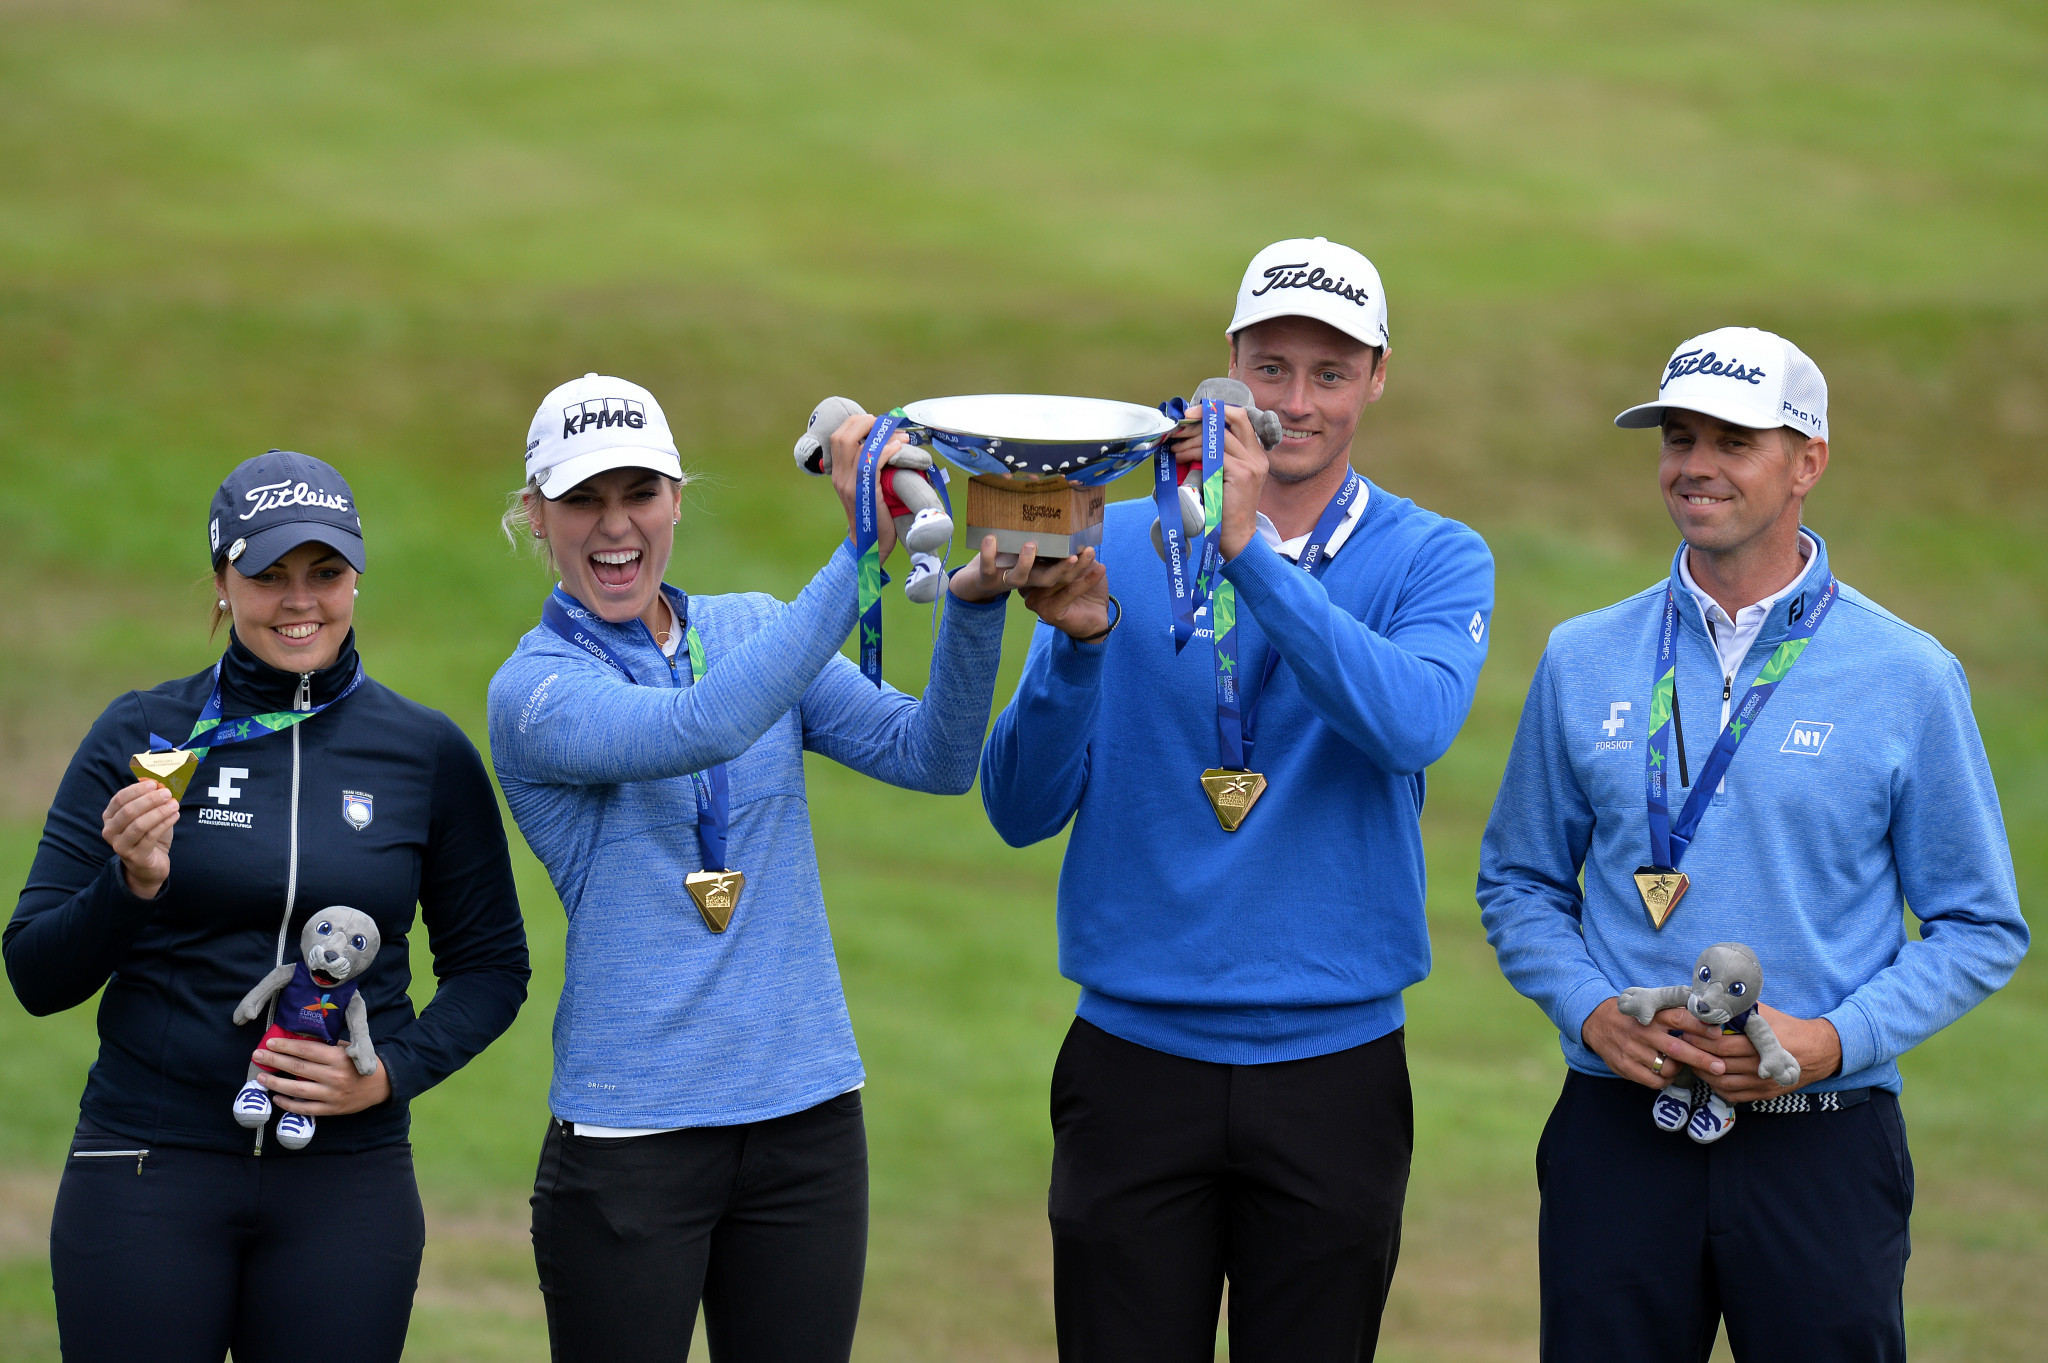 Iceland claim historic mixed team golf title on penultimate day of 2018 European Championships